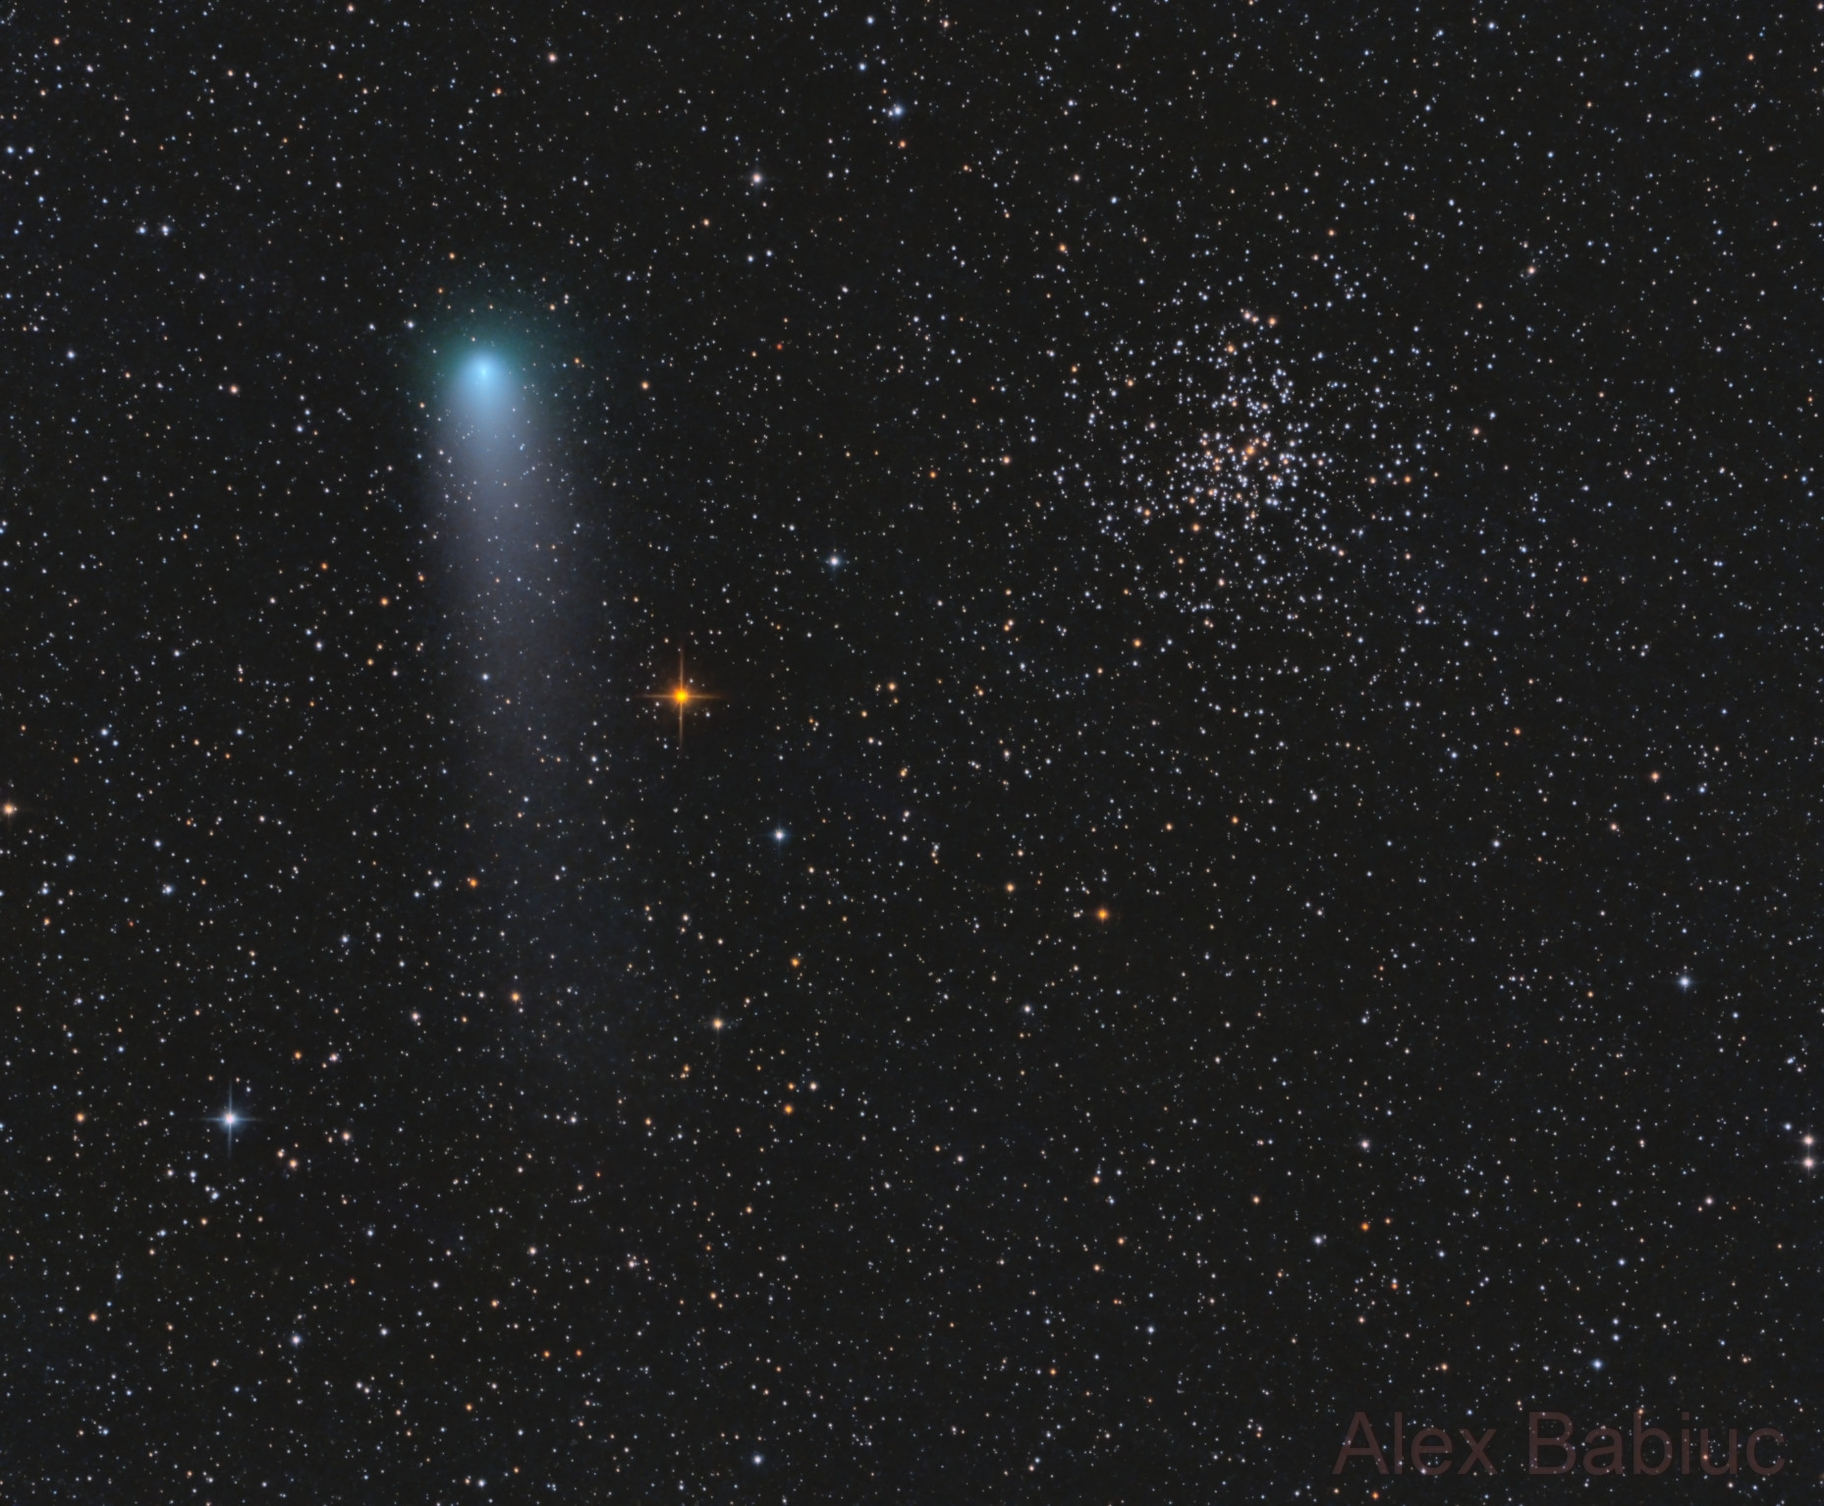 Comet 21P/Giacobini–Zinner meets M37 at perihelion